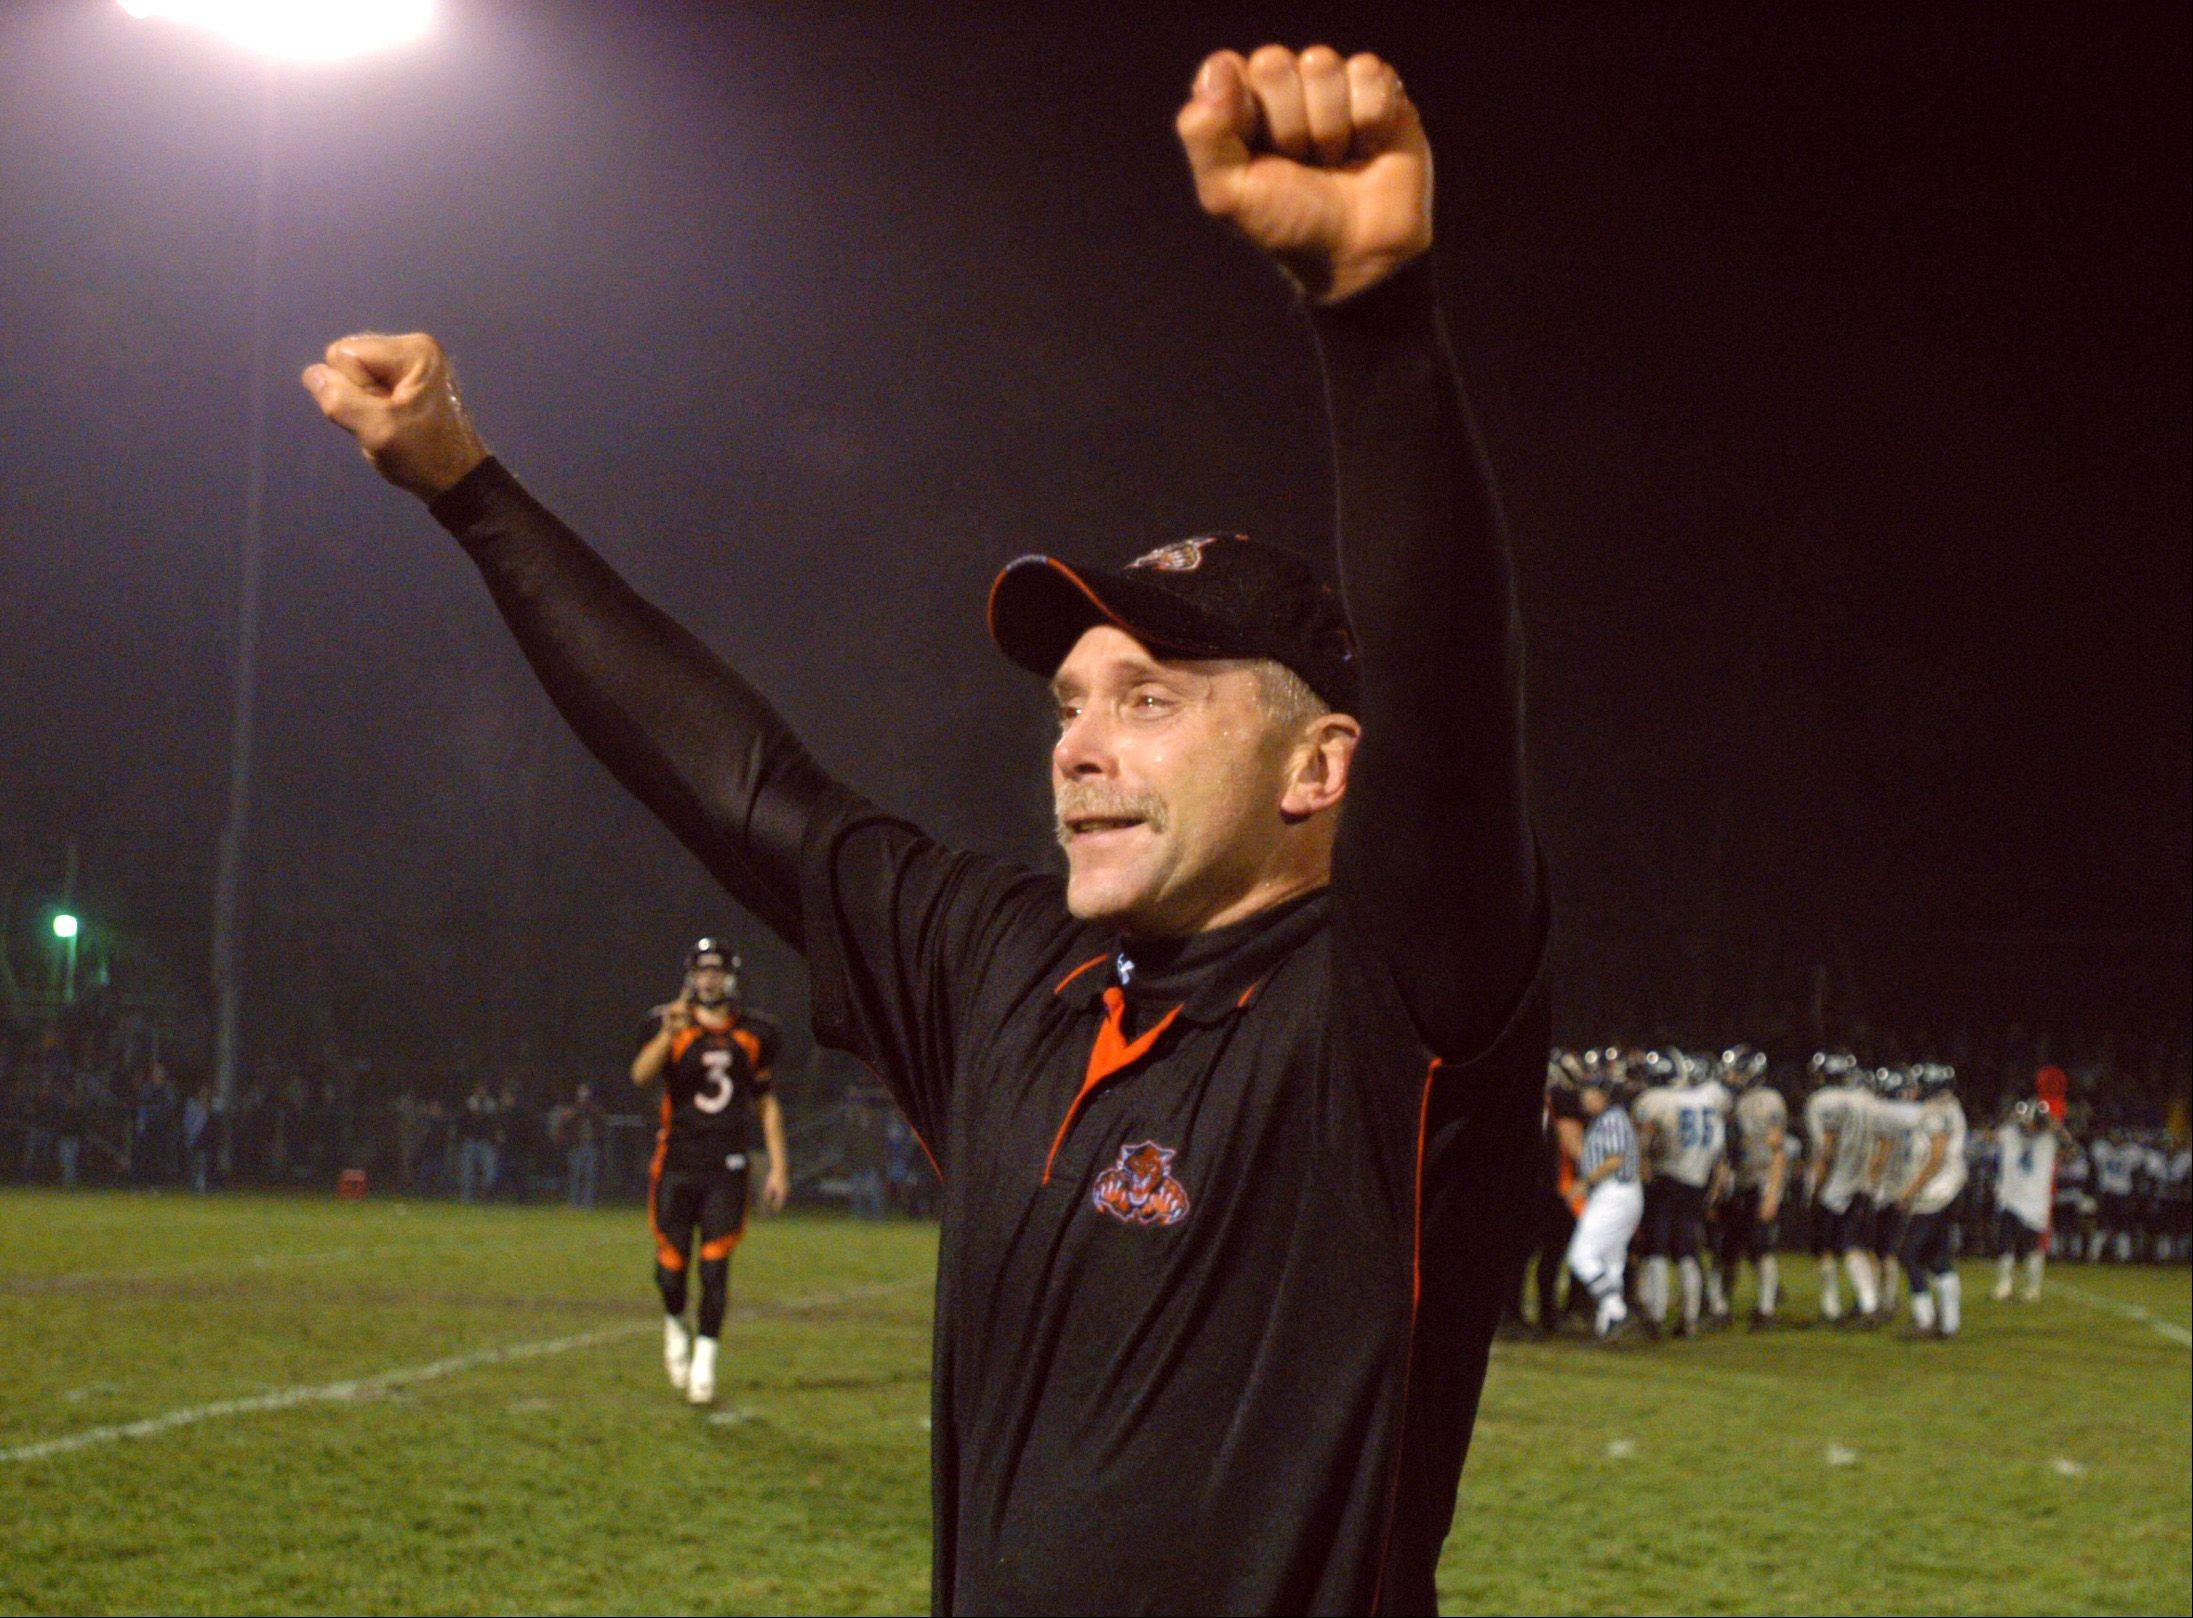 Former Libertyville football head coach Randy Kuceyeski, here celebrating at playoff victory against Prospect, is headed for the Lake County High Schools Sports Hall of Fame.